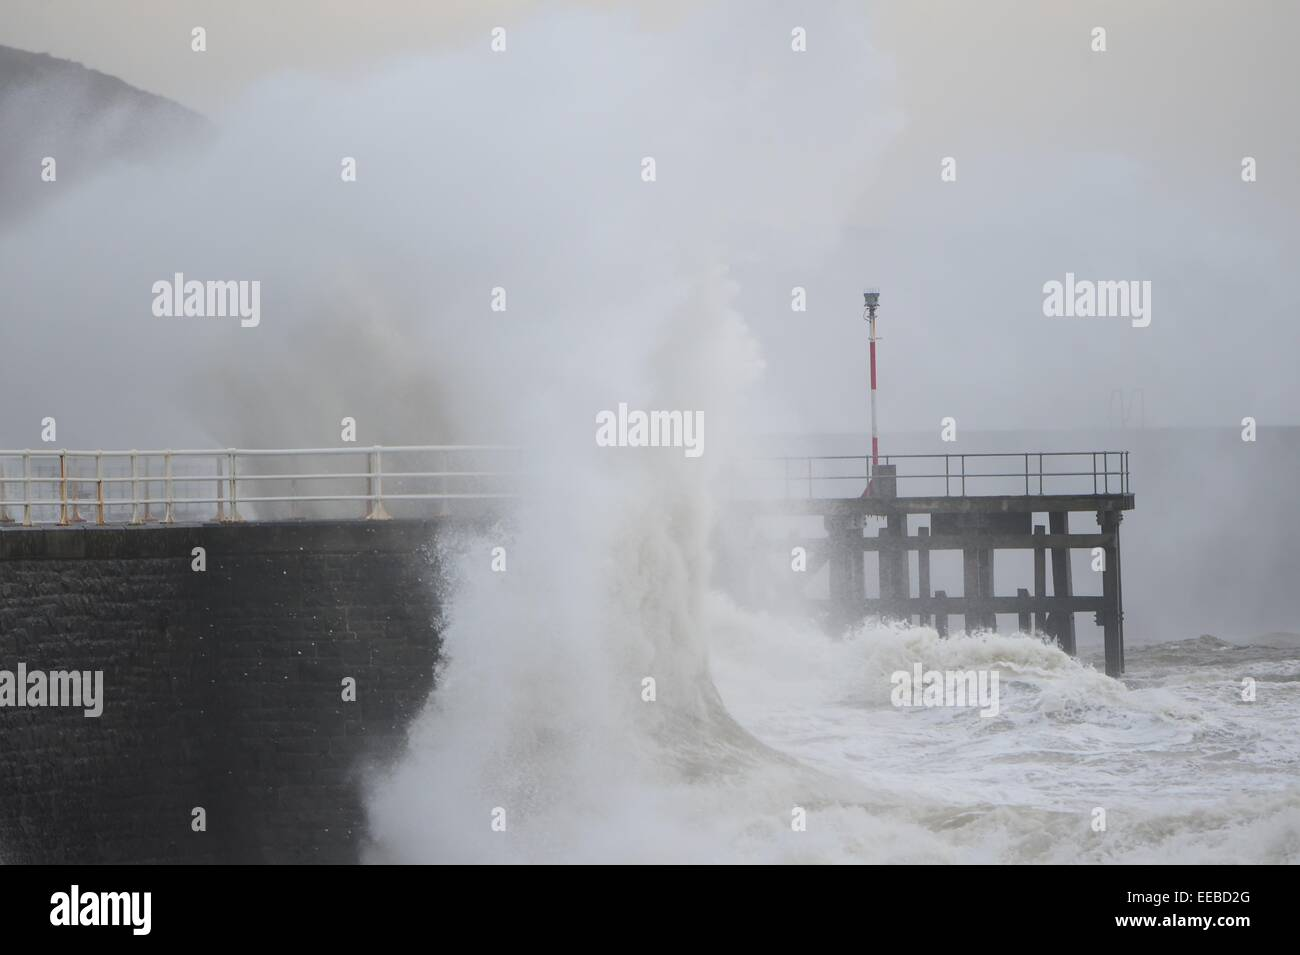 Aberystwyth, Wales, UK. 15th January, 2015. UK Weather: Gale force winds and stormy seas continue to batter the Stock Photo